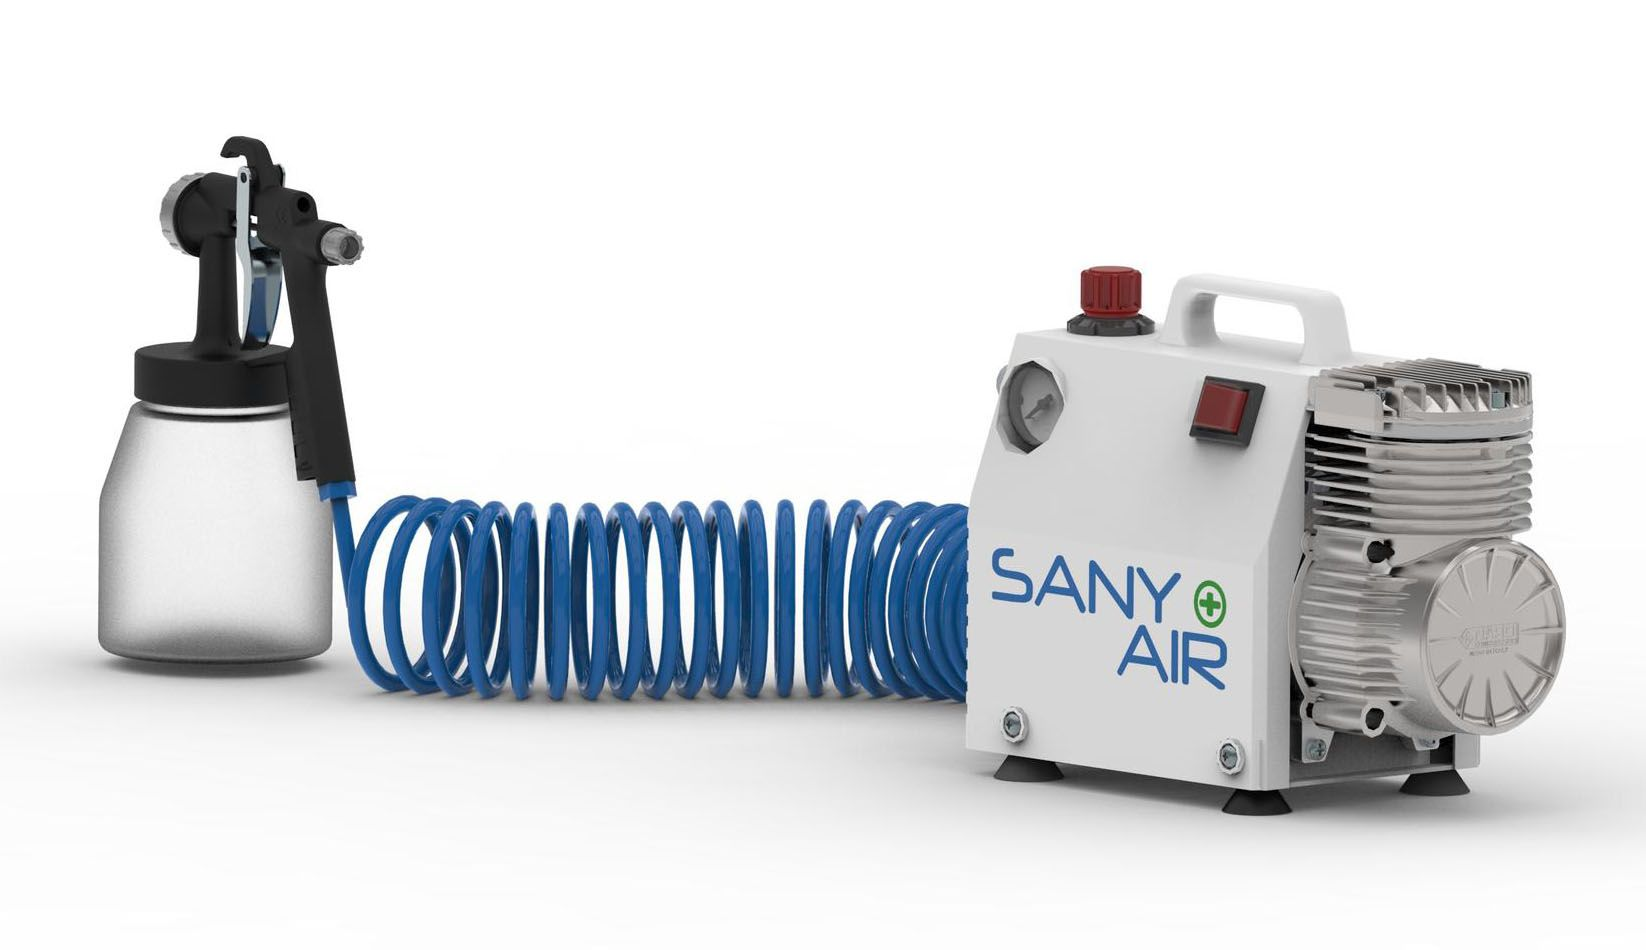 Sany-Air Surface Sanitising Compressor Sprayer